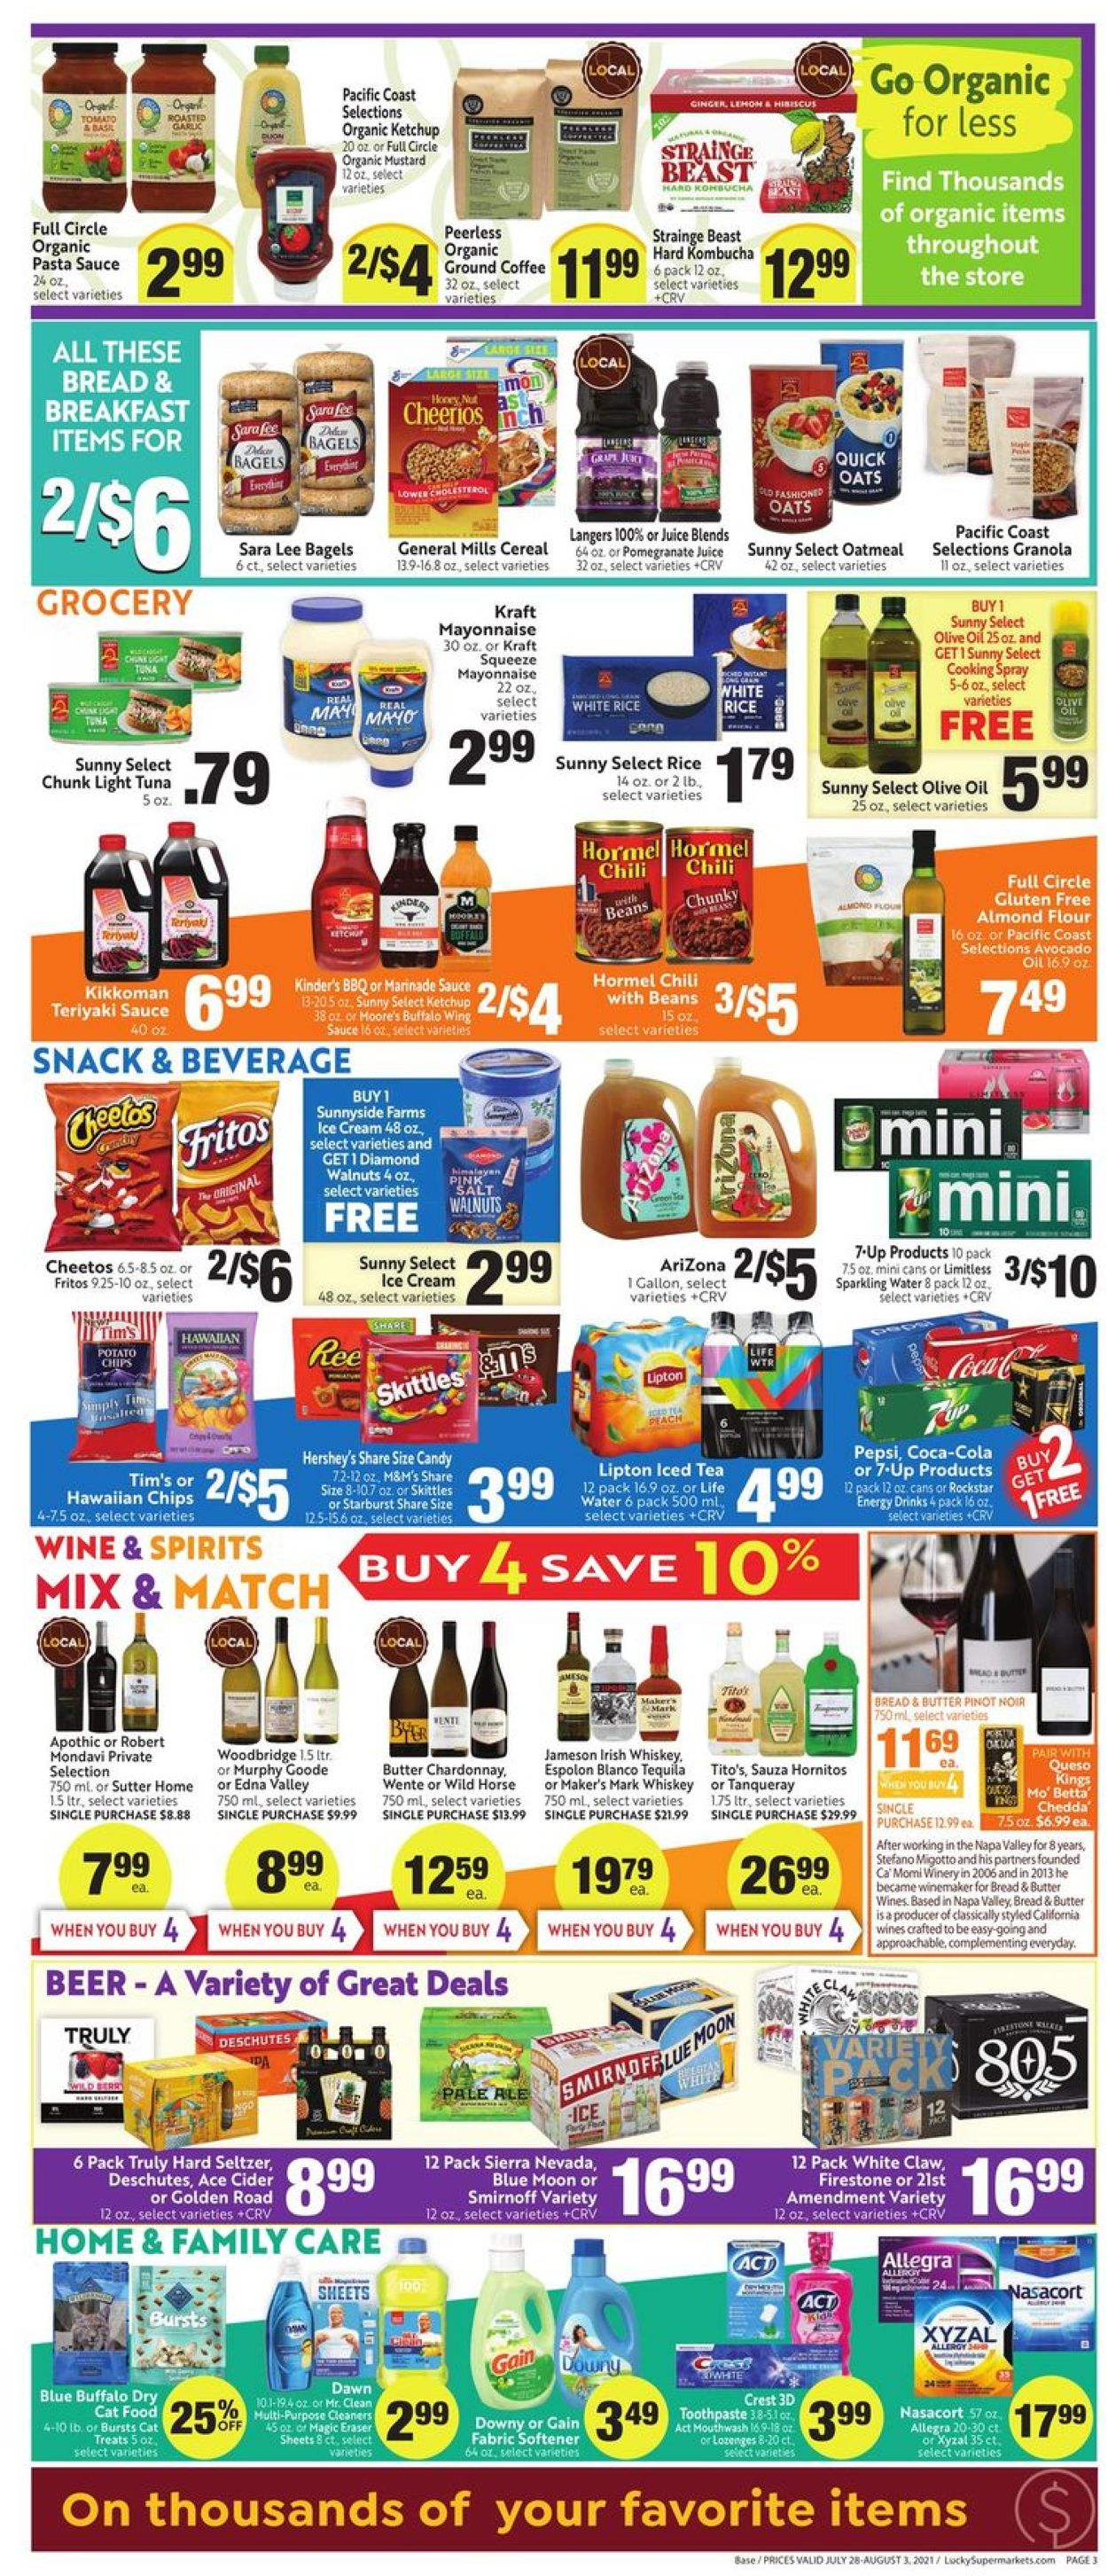 Lucky Supermarkets Weekly Ad Circular - valid 07/28-08/03/2021 (Page 3)